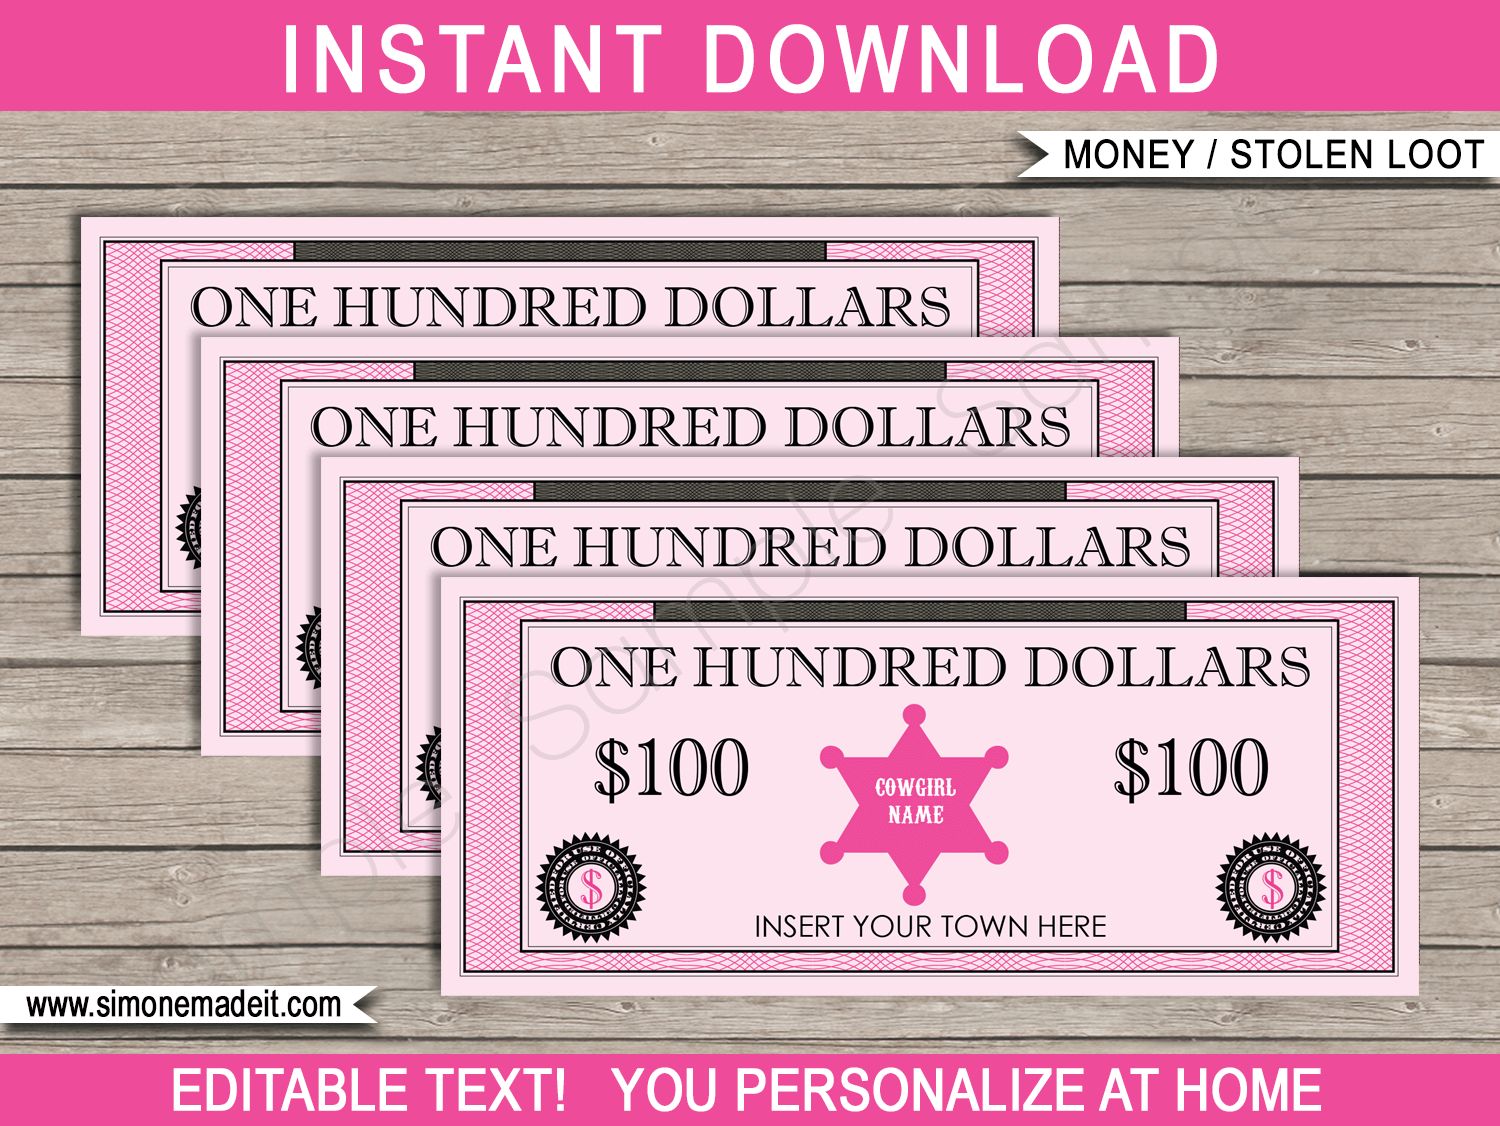 Printable Cowgirl Stolen Loot | Pretend Play Money Bucks Bank Notes | Sheriff Badges | Printable Party Games | Cowgirl Themed Birthday Party | Editable DIY Template | Instant Download via SIMONEmadeit.com